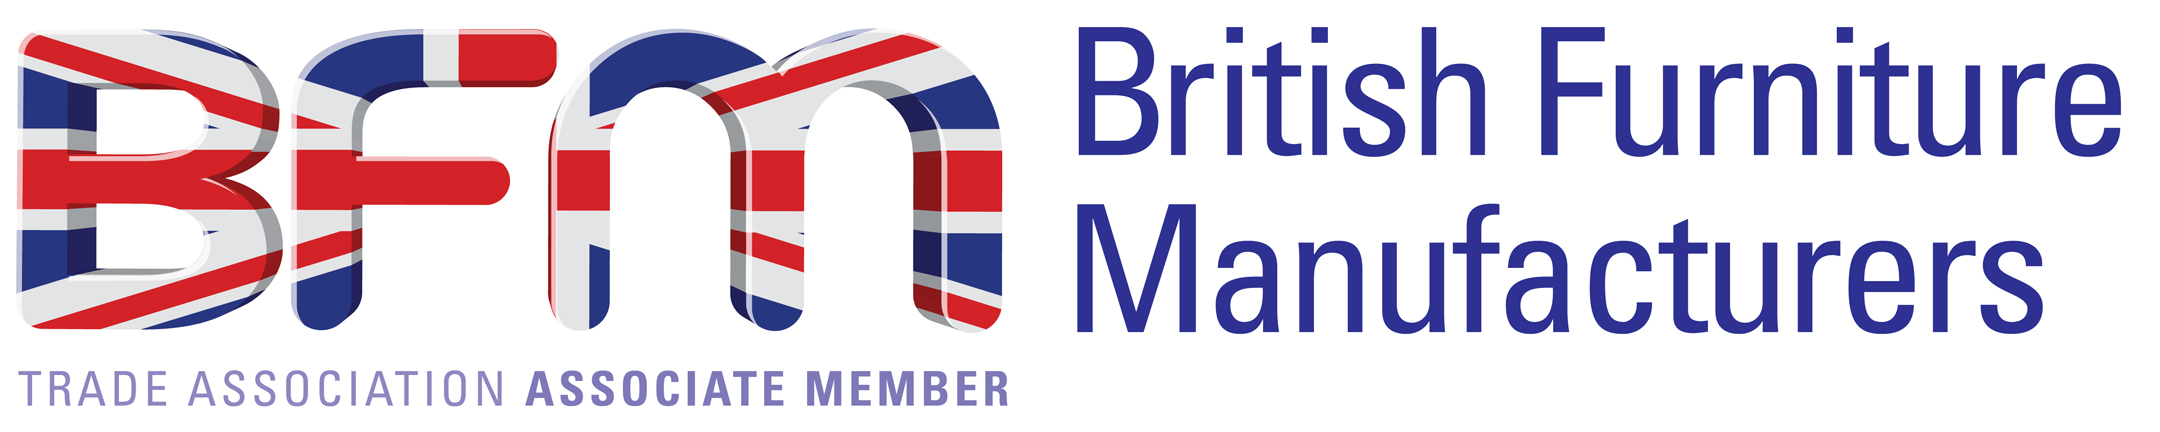 bfm-new associate-member-logo